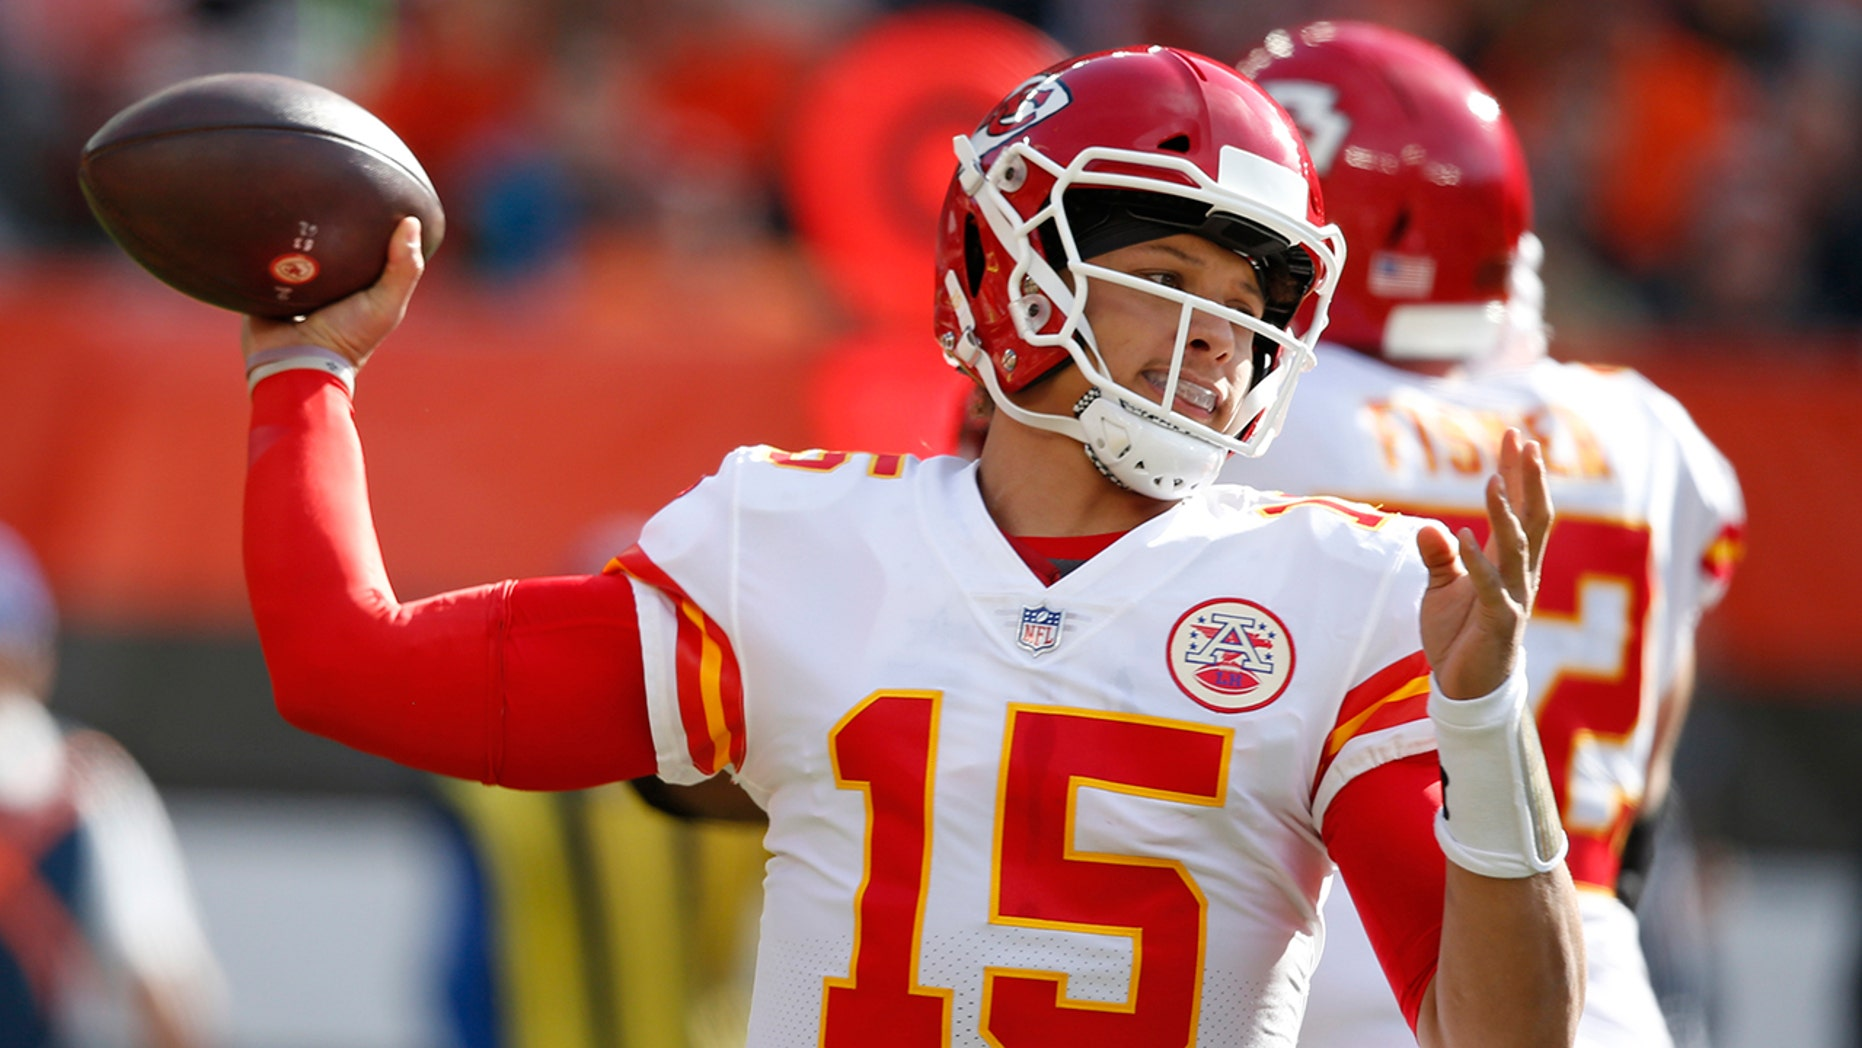 Kansas City Chiefs quarterback Patrick Mahomes' love for ketchup might land him in a sweet place.